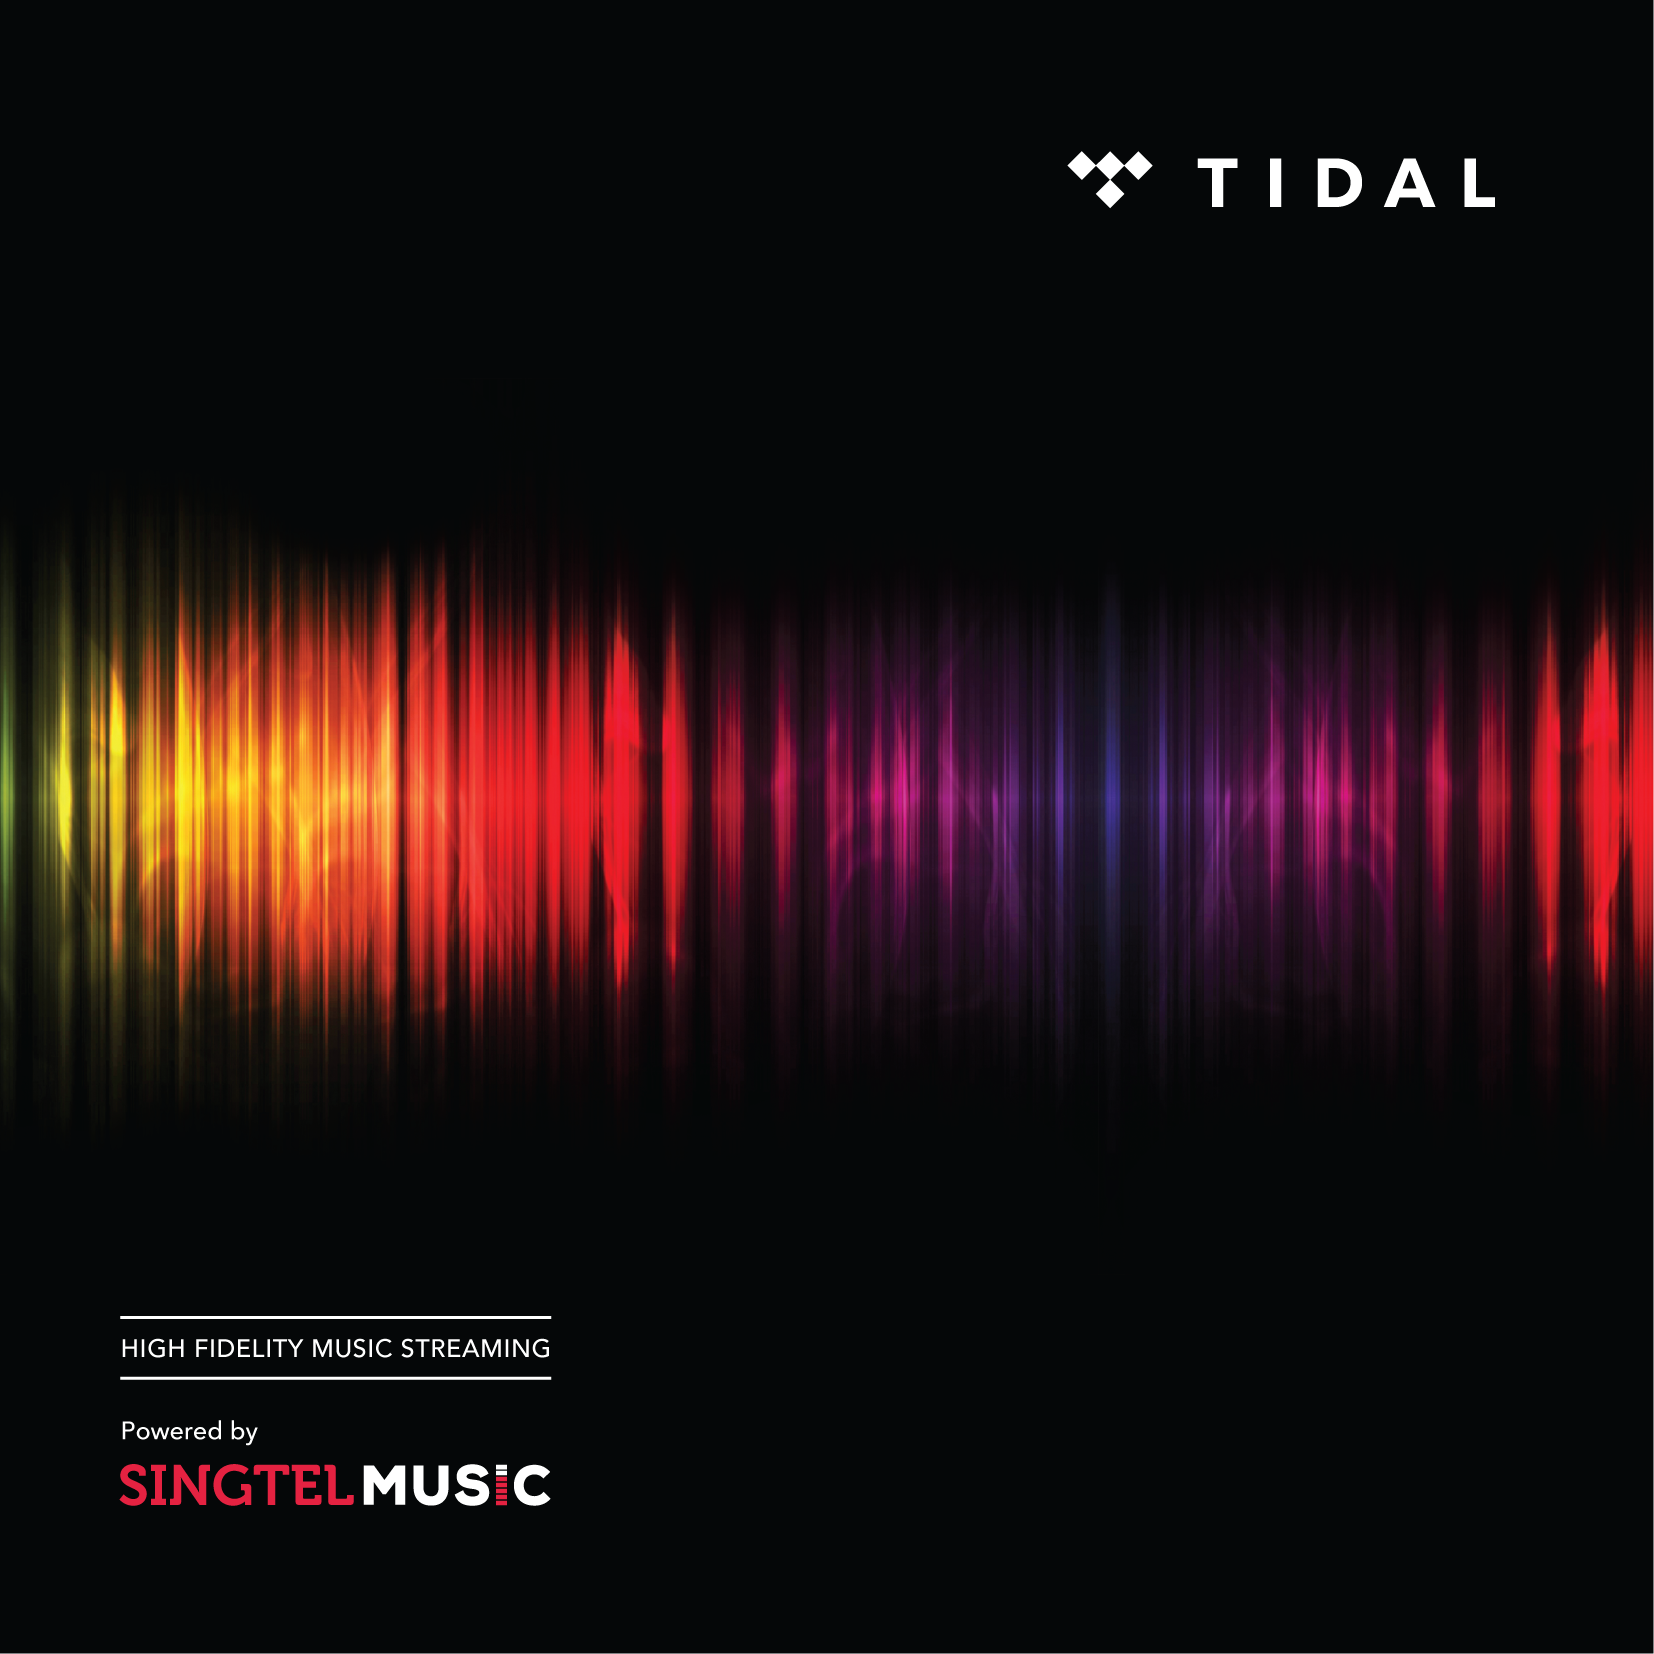 Tidal, lossless audio streaming service, joins Singtel Music